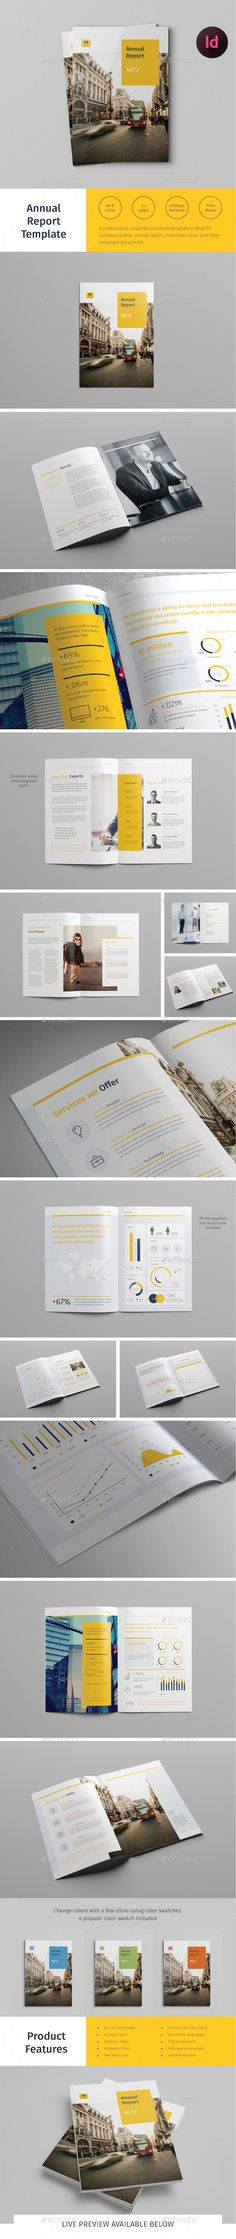 Annual Report Template 	InDesign INDD. Download here: http://graphicriver.net/item/annual-report-template/14860564?ref=ksioks